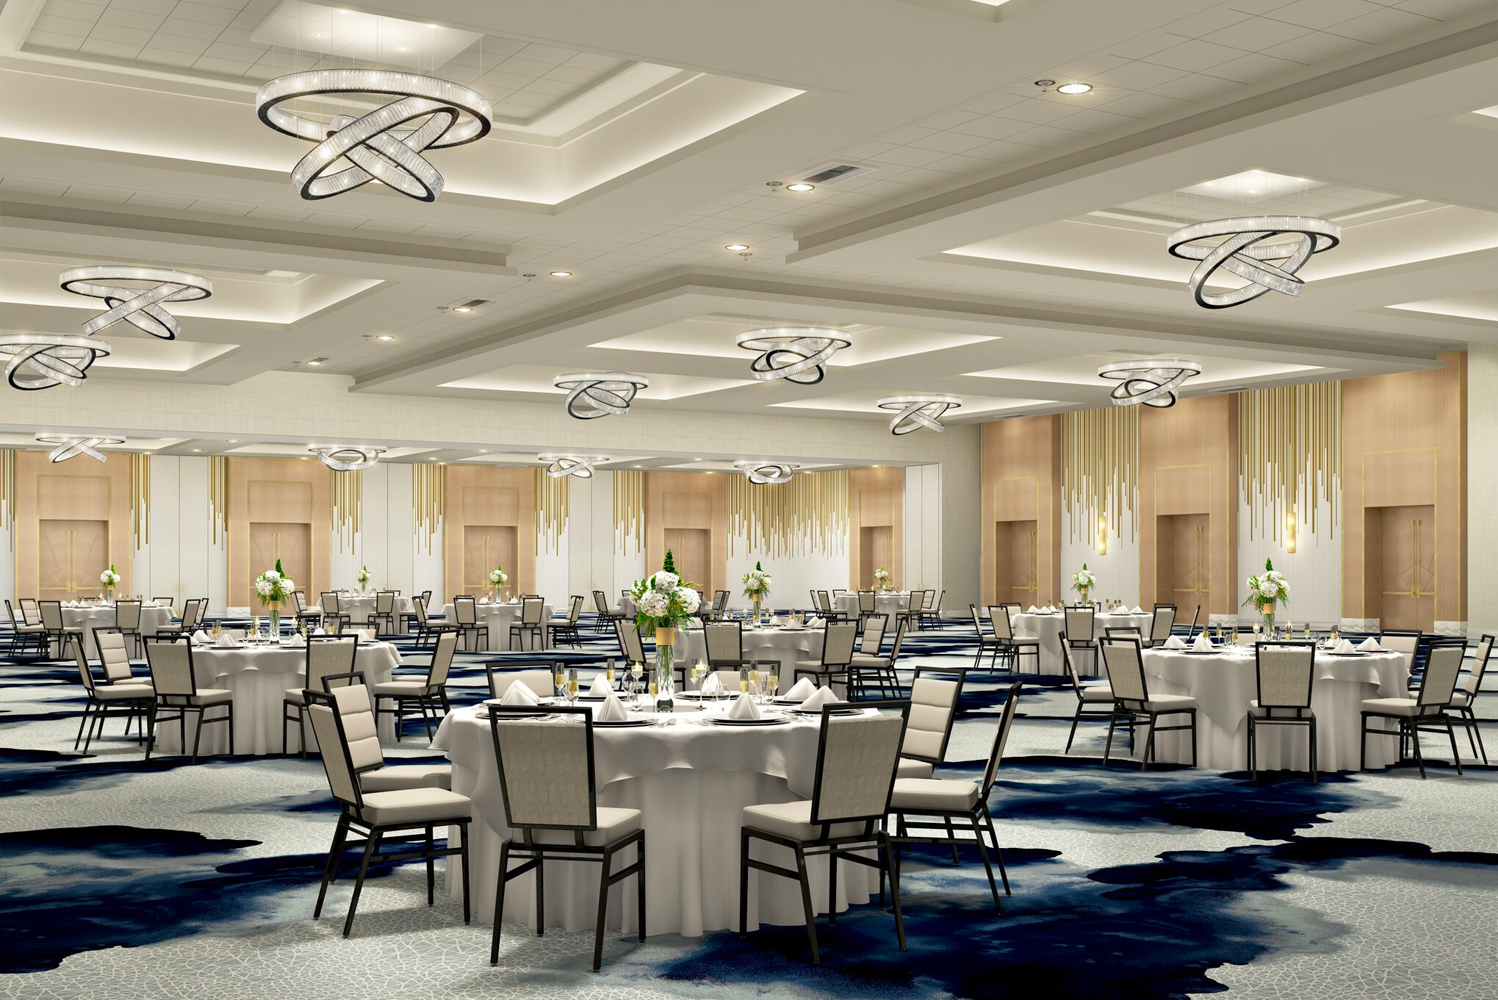 The property will have 234,000 square feet of renovated meetings space.